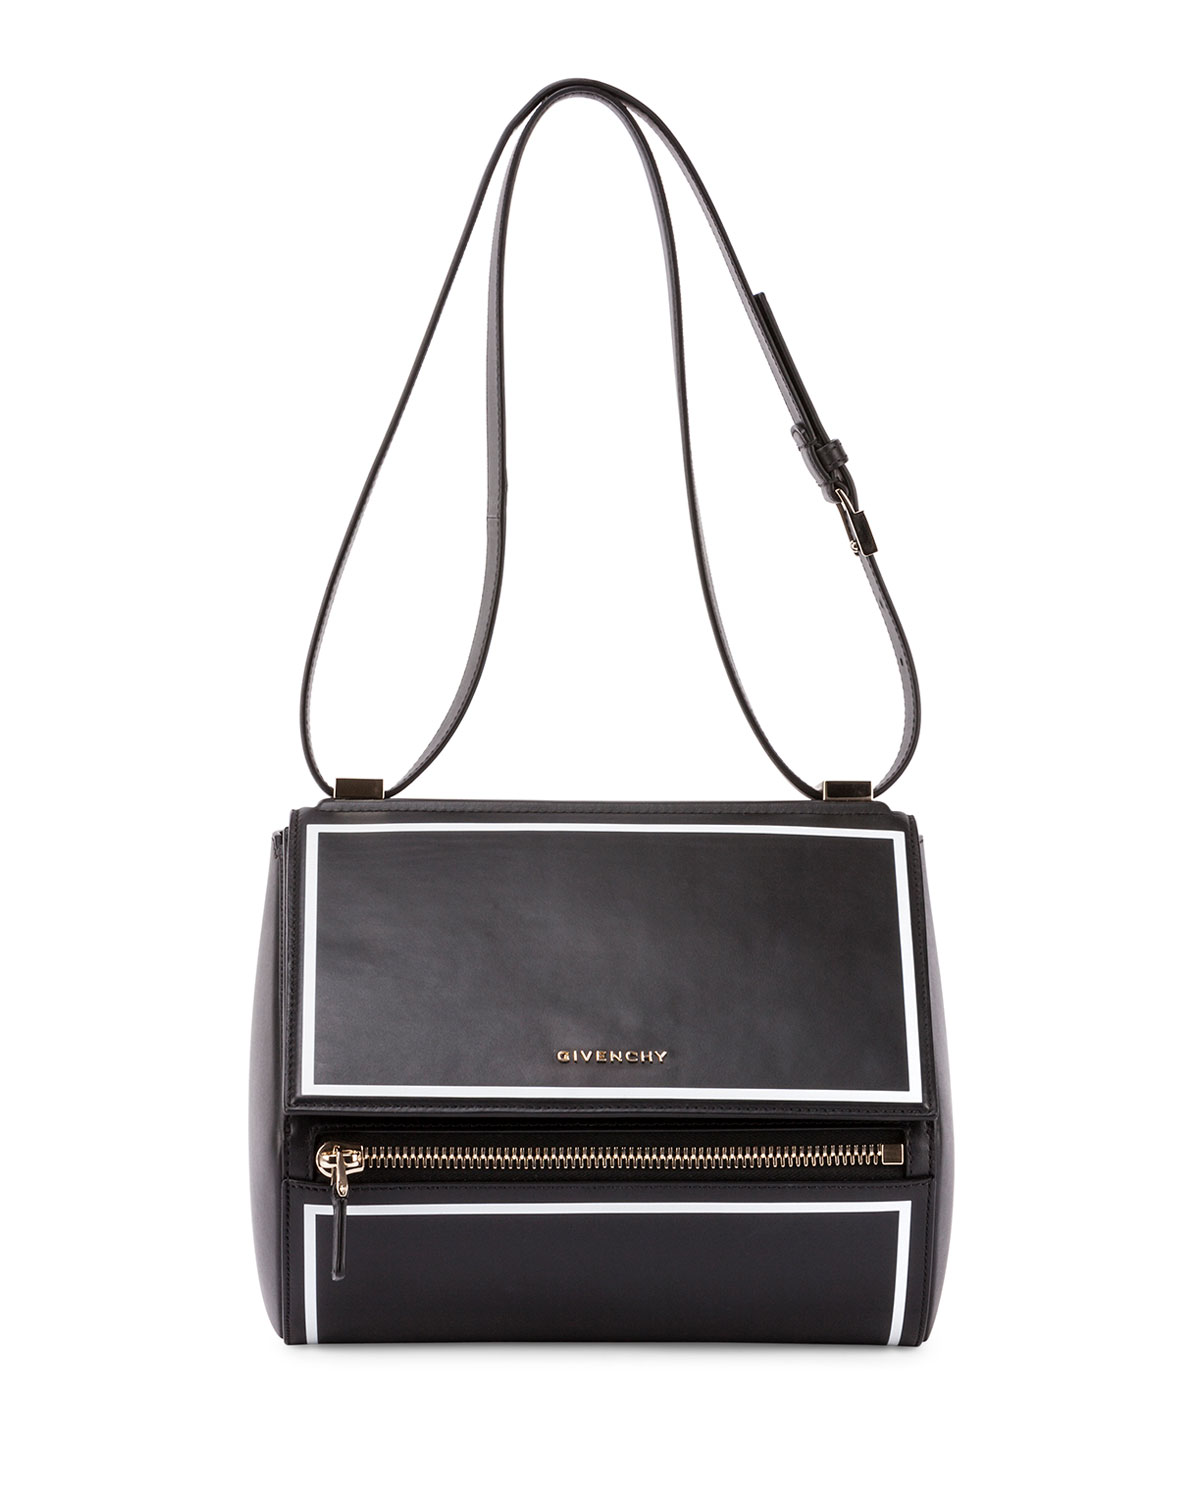 ec4064ba85 Givenchy Pandora Box Medium Shoulder Bag, Black | Neiman Marcus